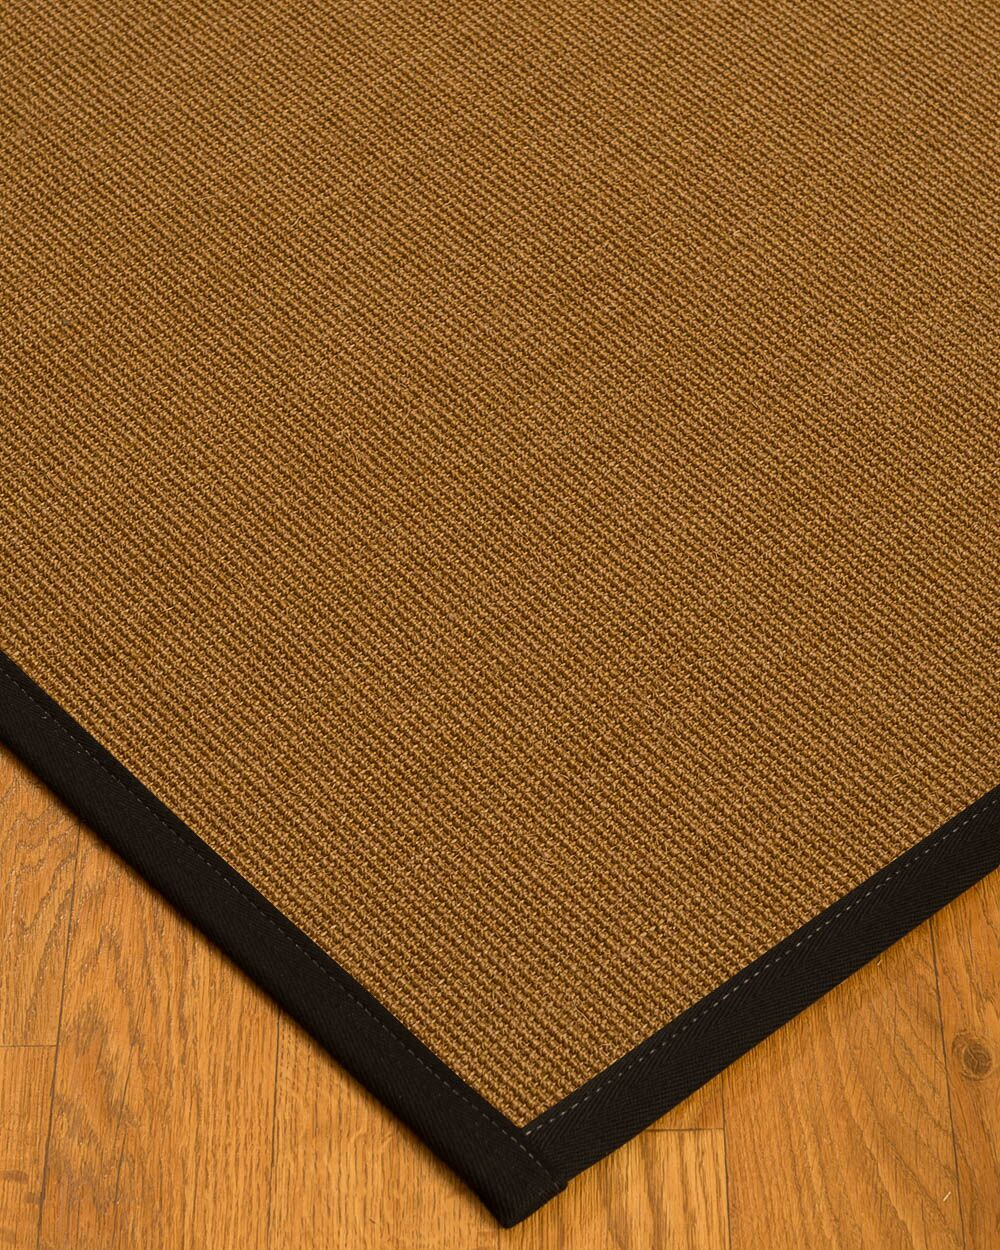 Antonina Border Hand-Woven Brown/Black Area Rug Rug Size: Rectangle 12' x 15', Rug Pad Included: Yes